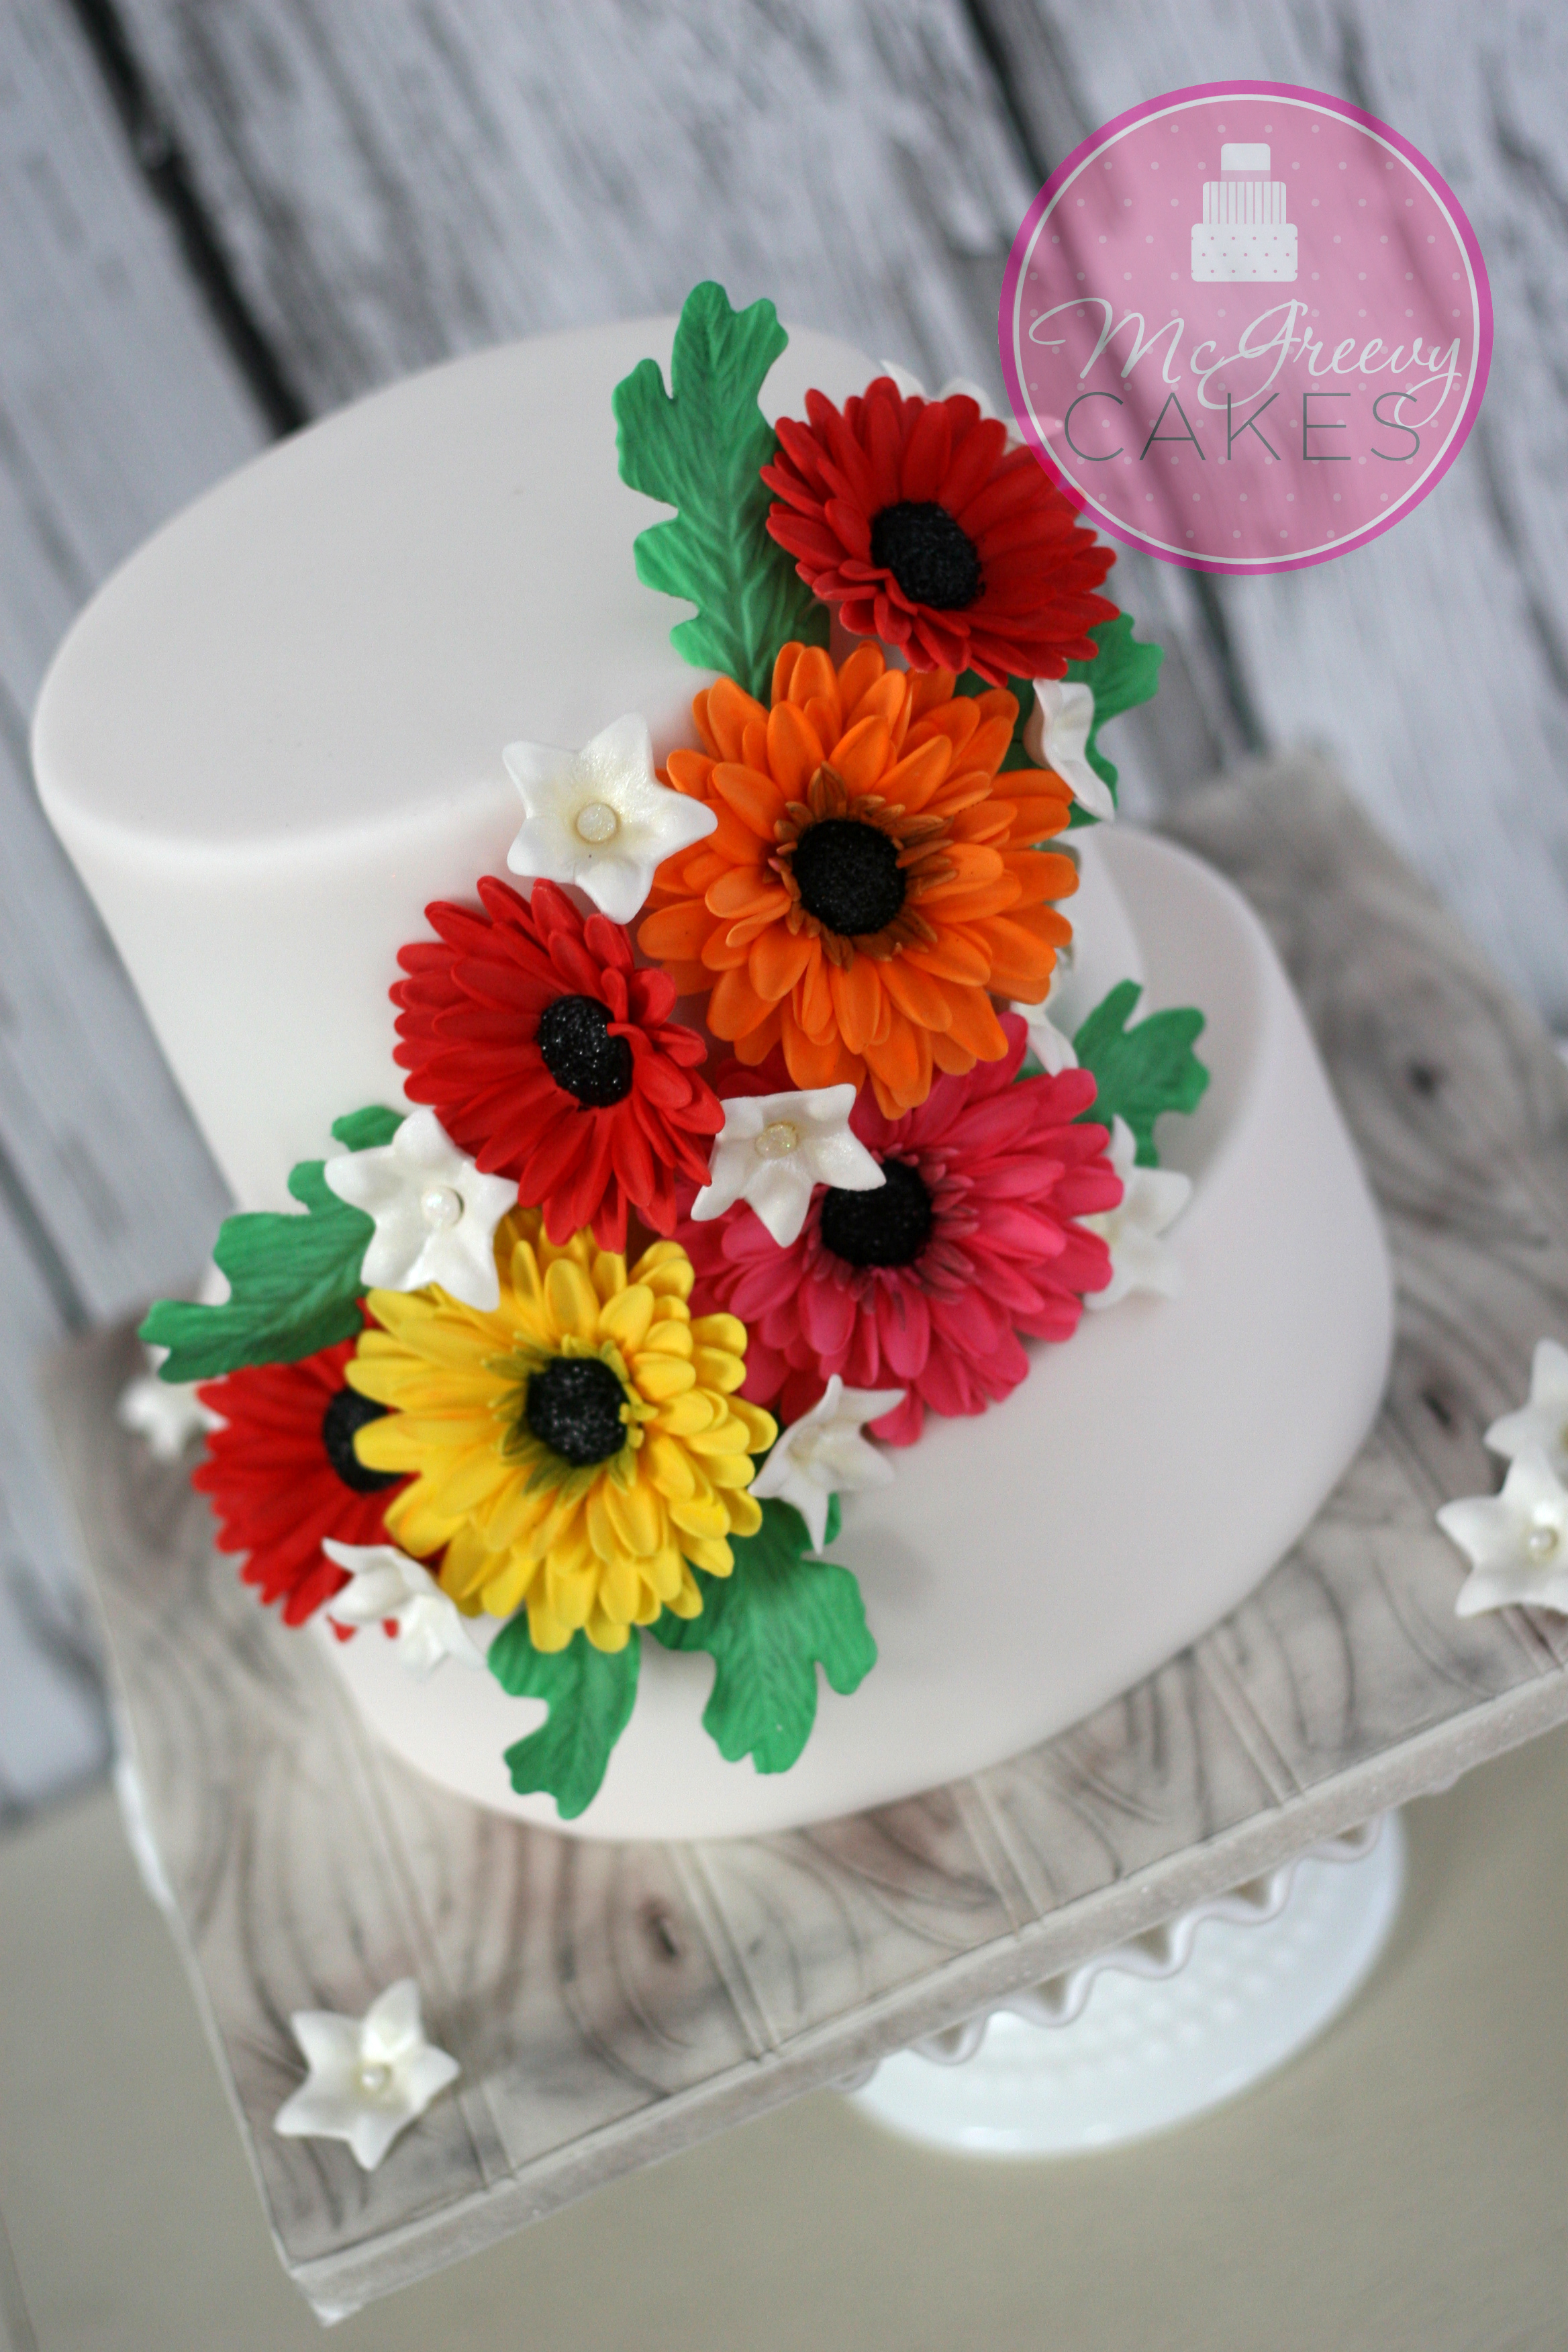 Cake Decorating How To Make Daisies : 70th Anniversary, Gerbera Daisy Cake - McGreevy Cakes